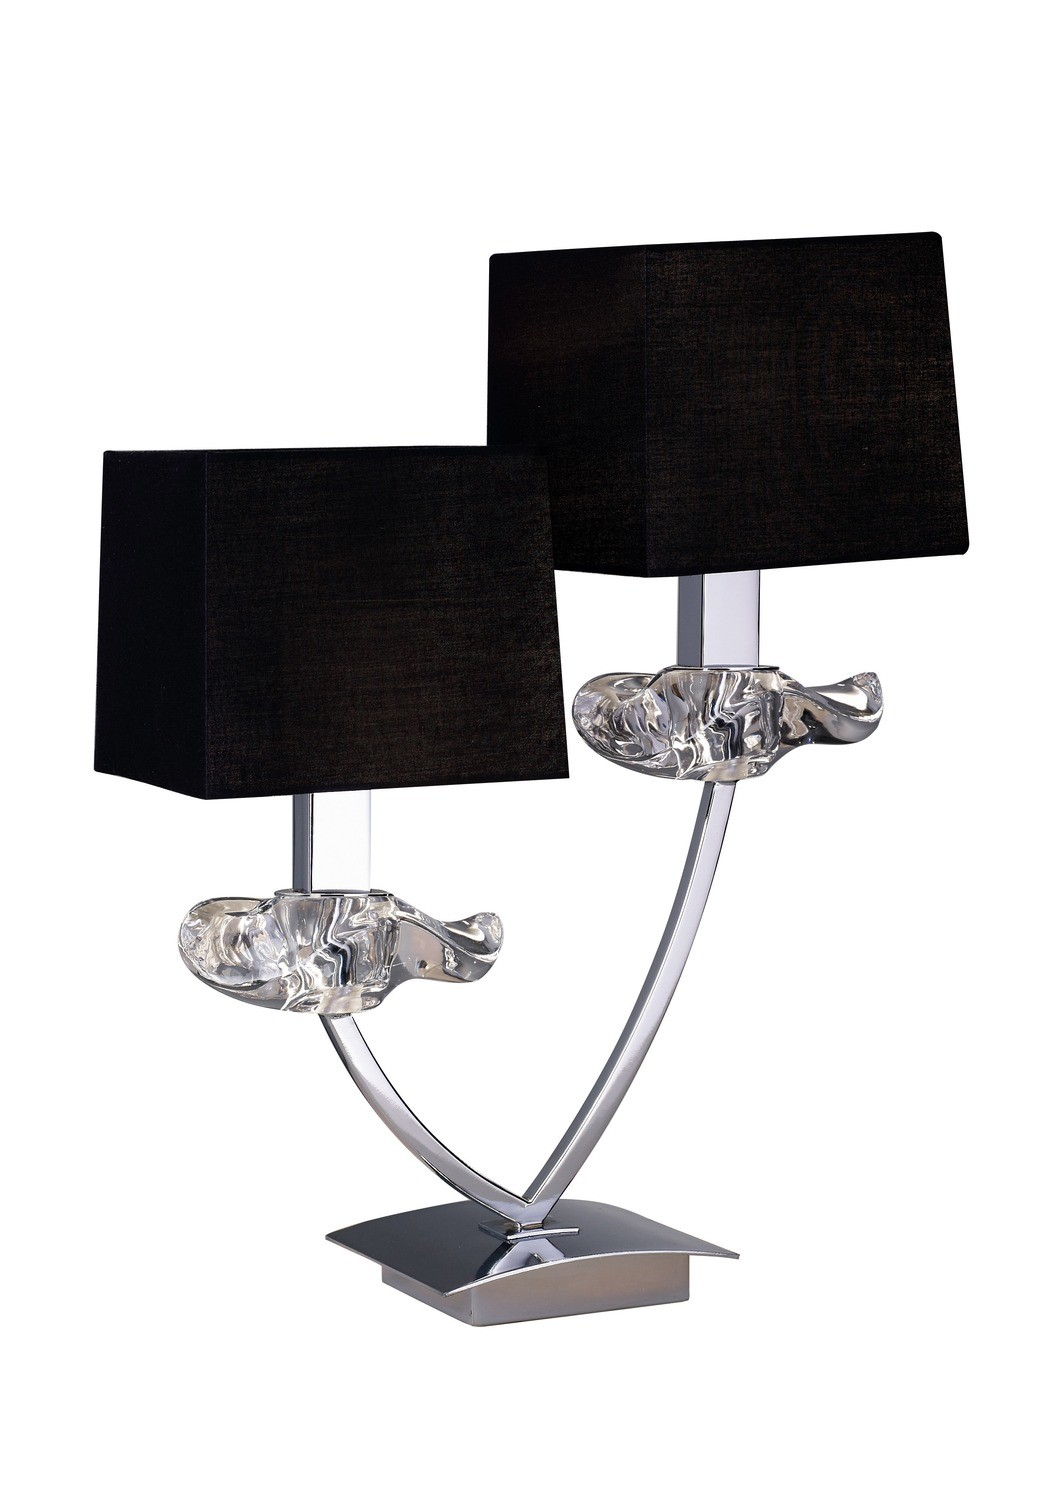 Akira Table Lamp 2 Light E14, Polished Chrome With Black Shades